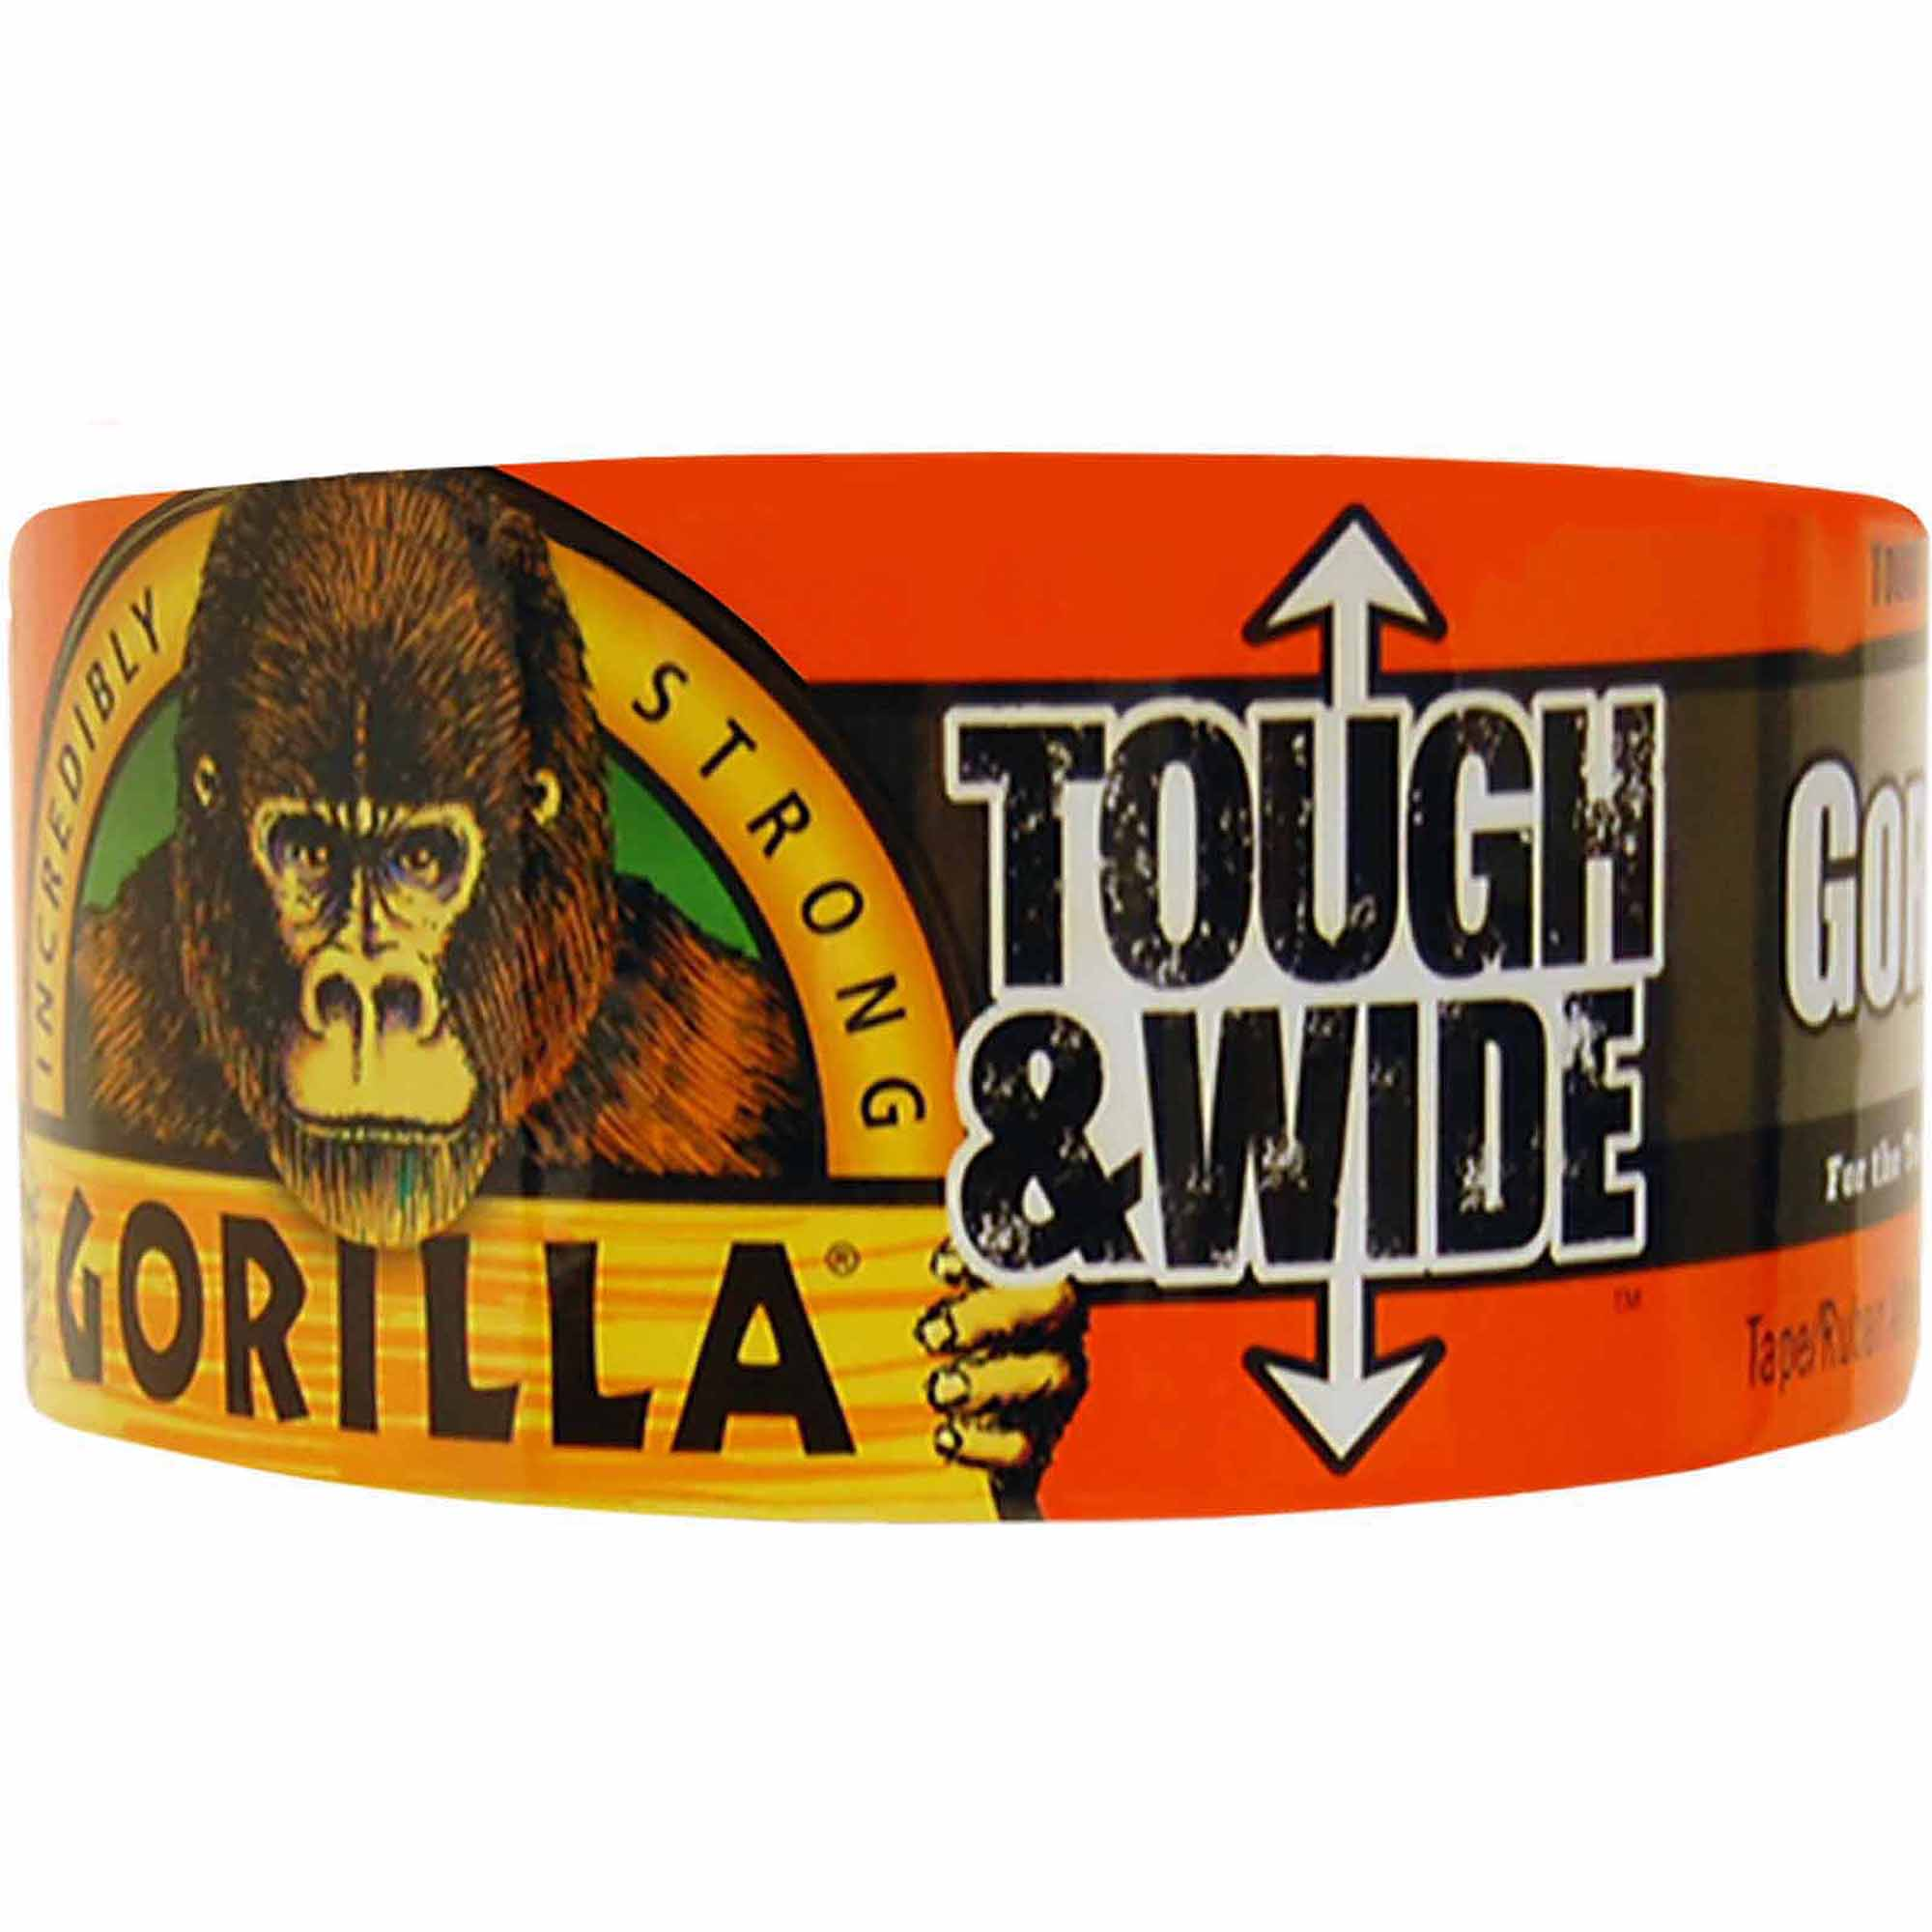 Gorilla Tape Tough and Wide Roll, Black, 30 yds